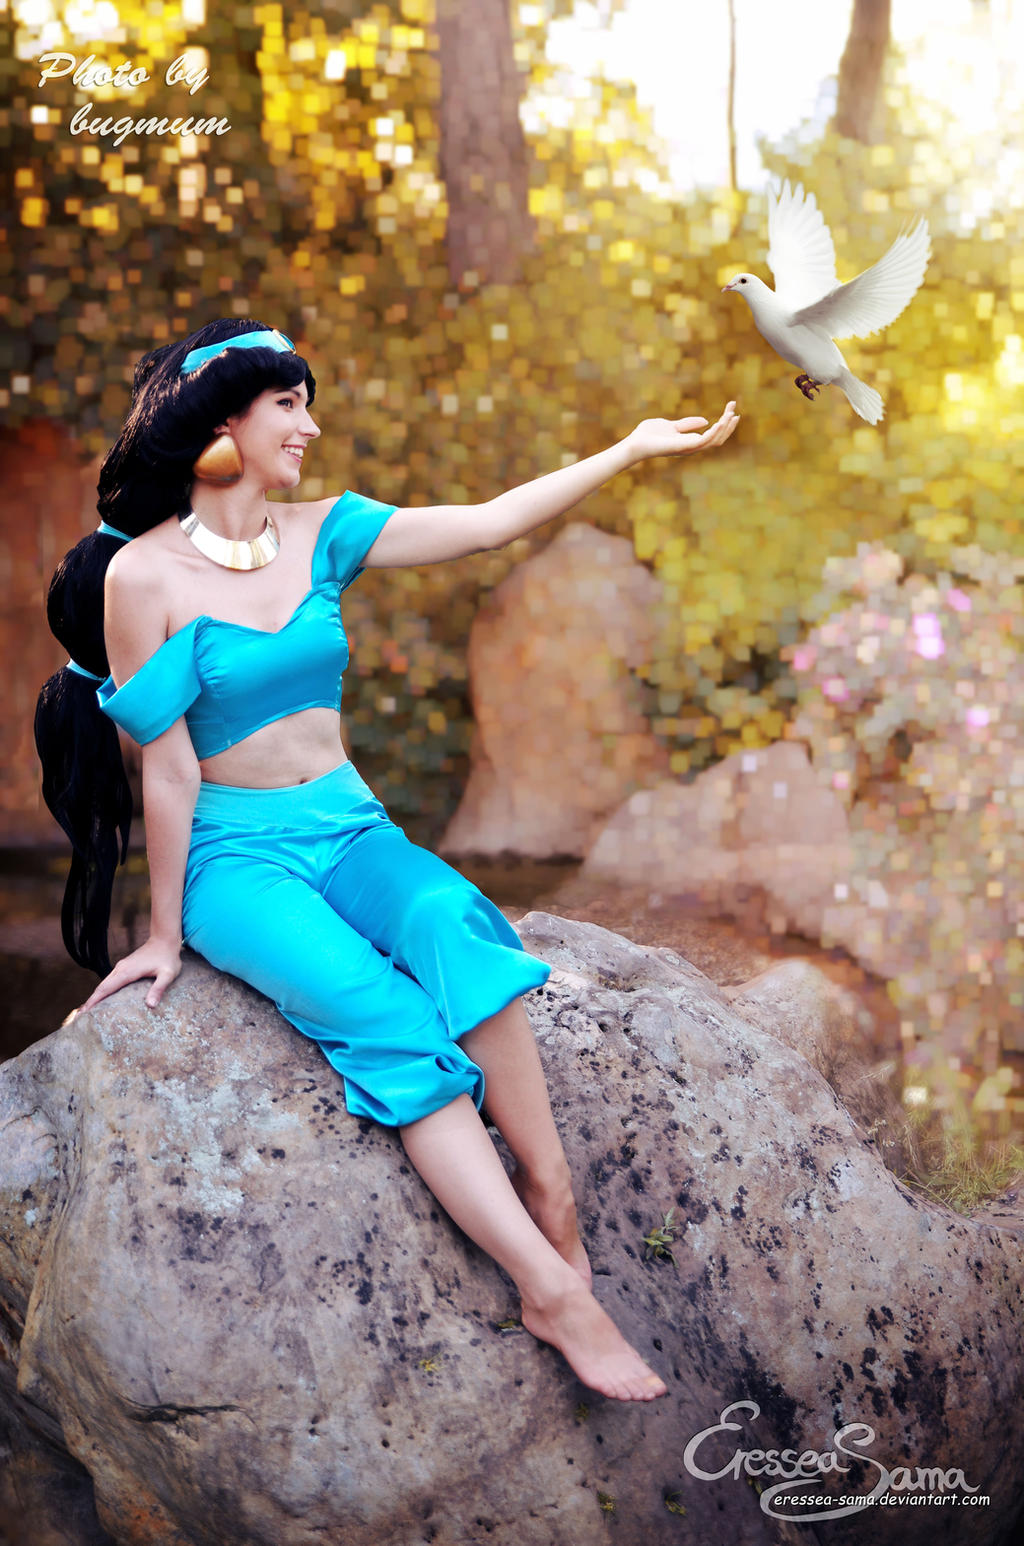 http://fc03.deviantart.net/fs70/i/2014/163/7/4/a_dream_of_freedom___princess_jasmine_cosplay_by_eressea_sama-d7m4e2f.jpg